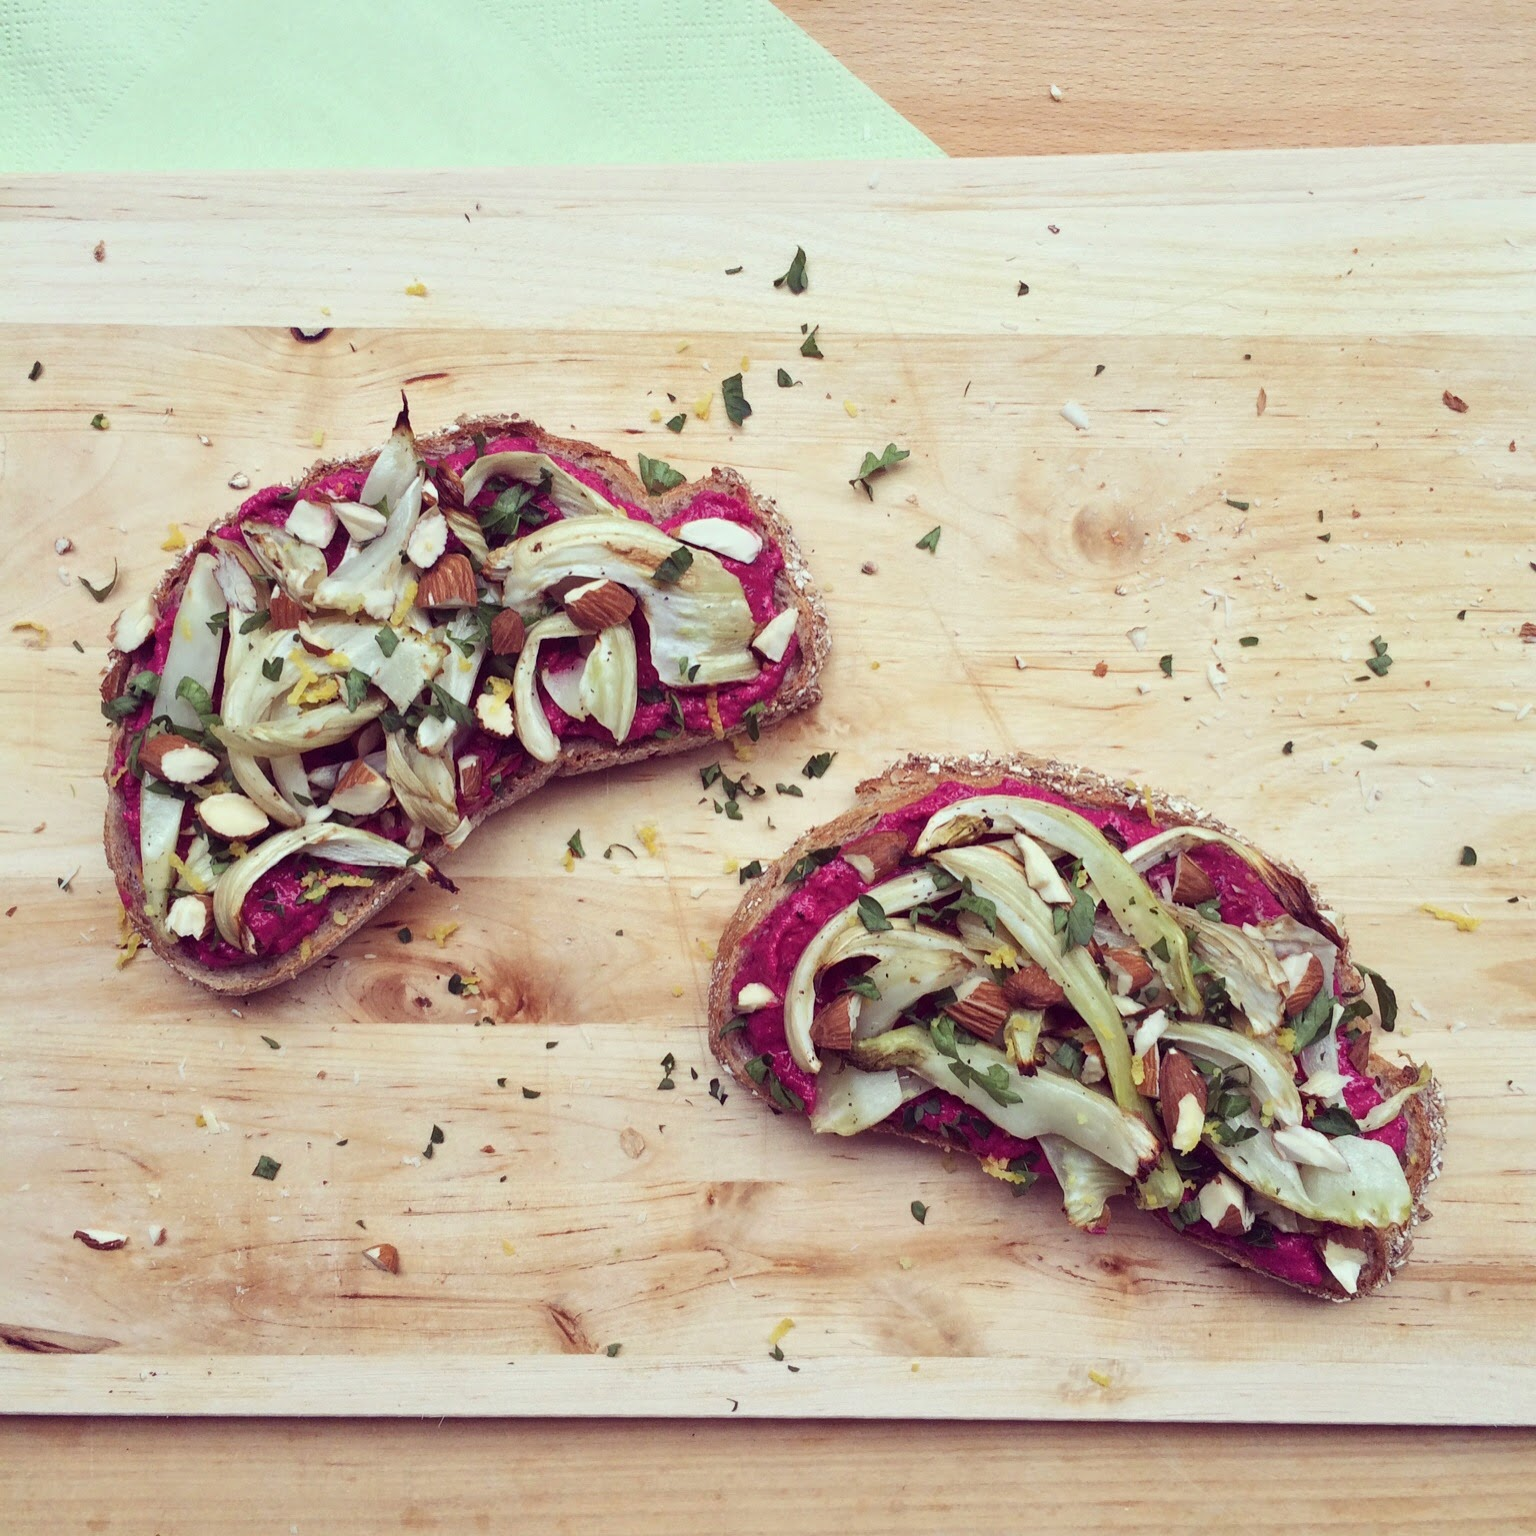 tartines betterave fenouil amandes